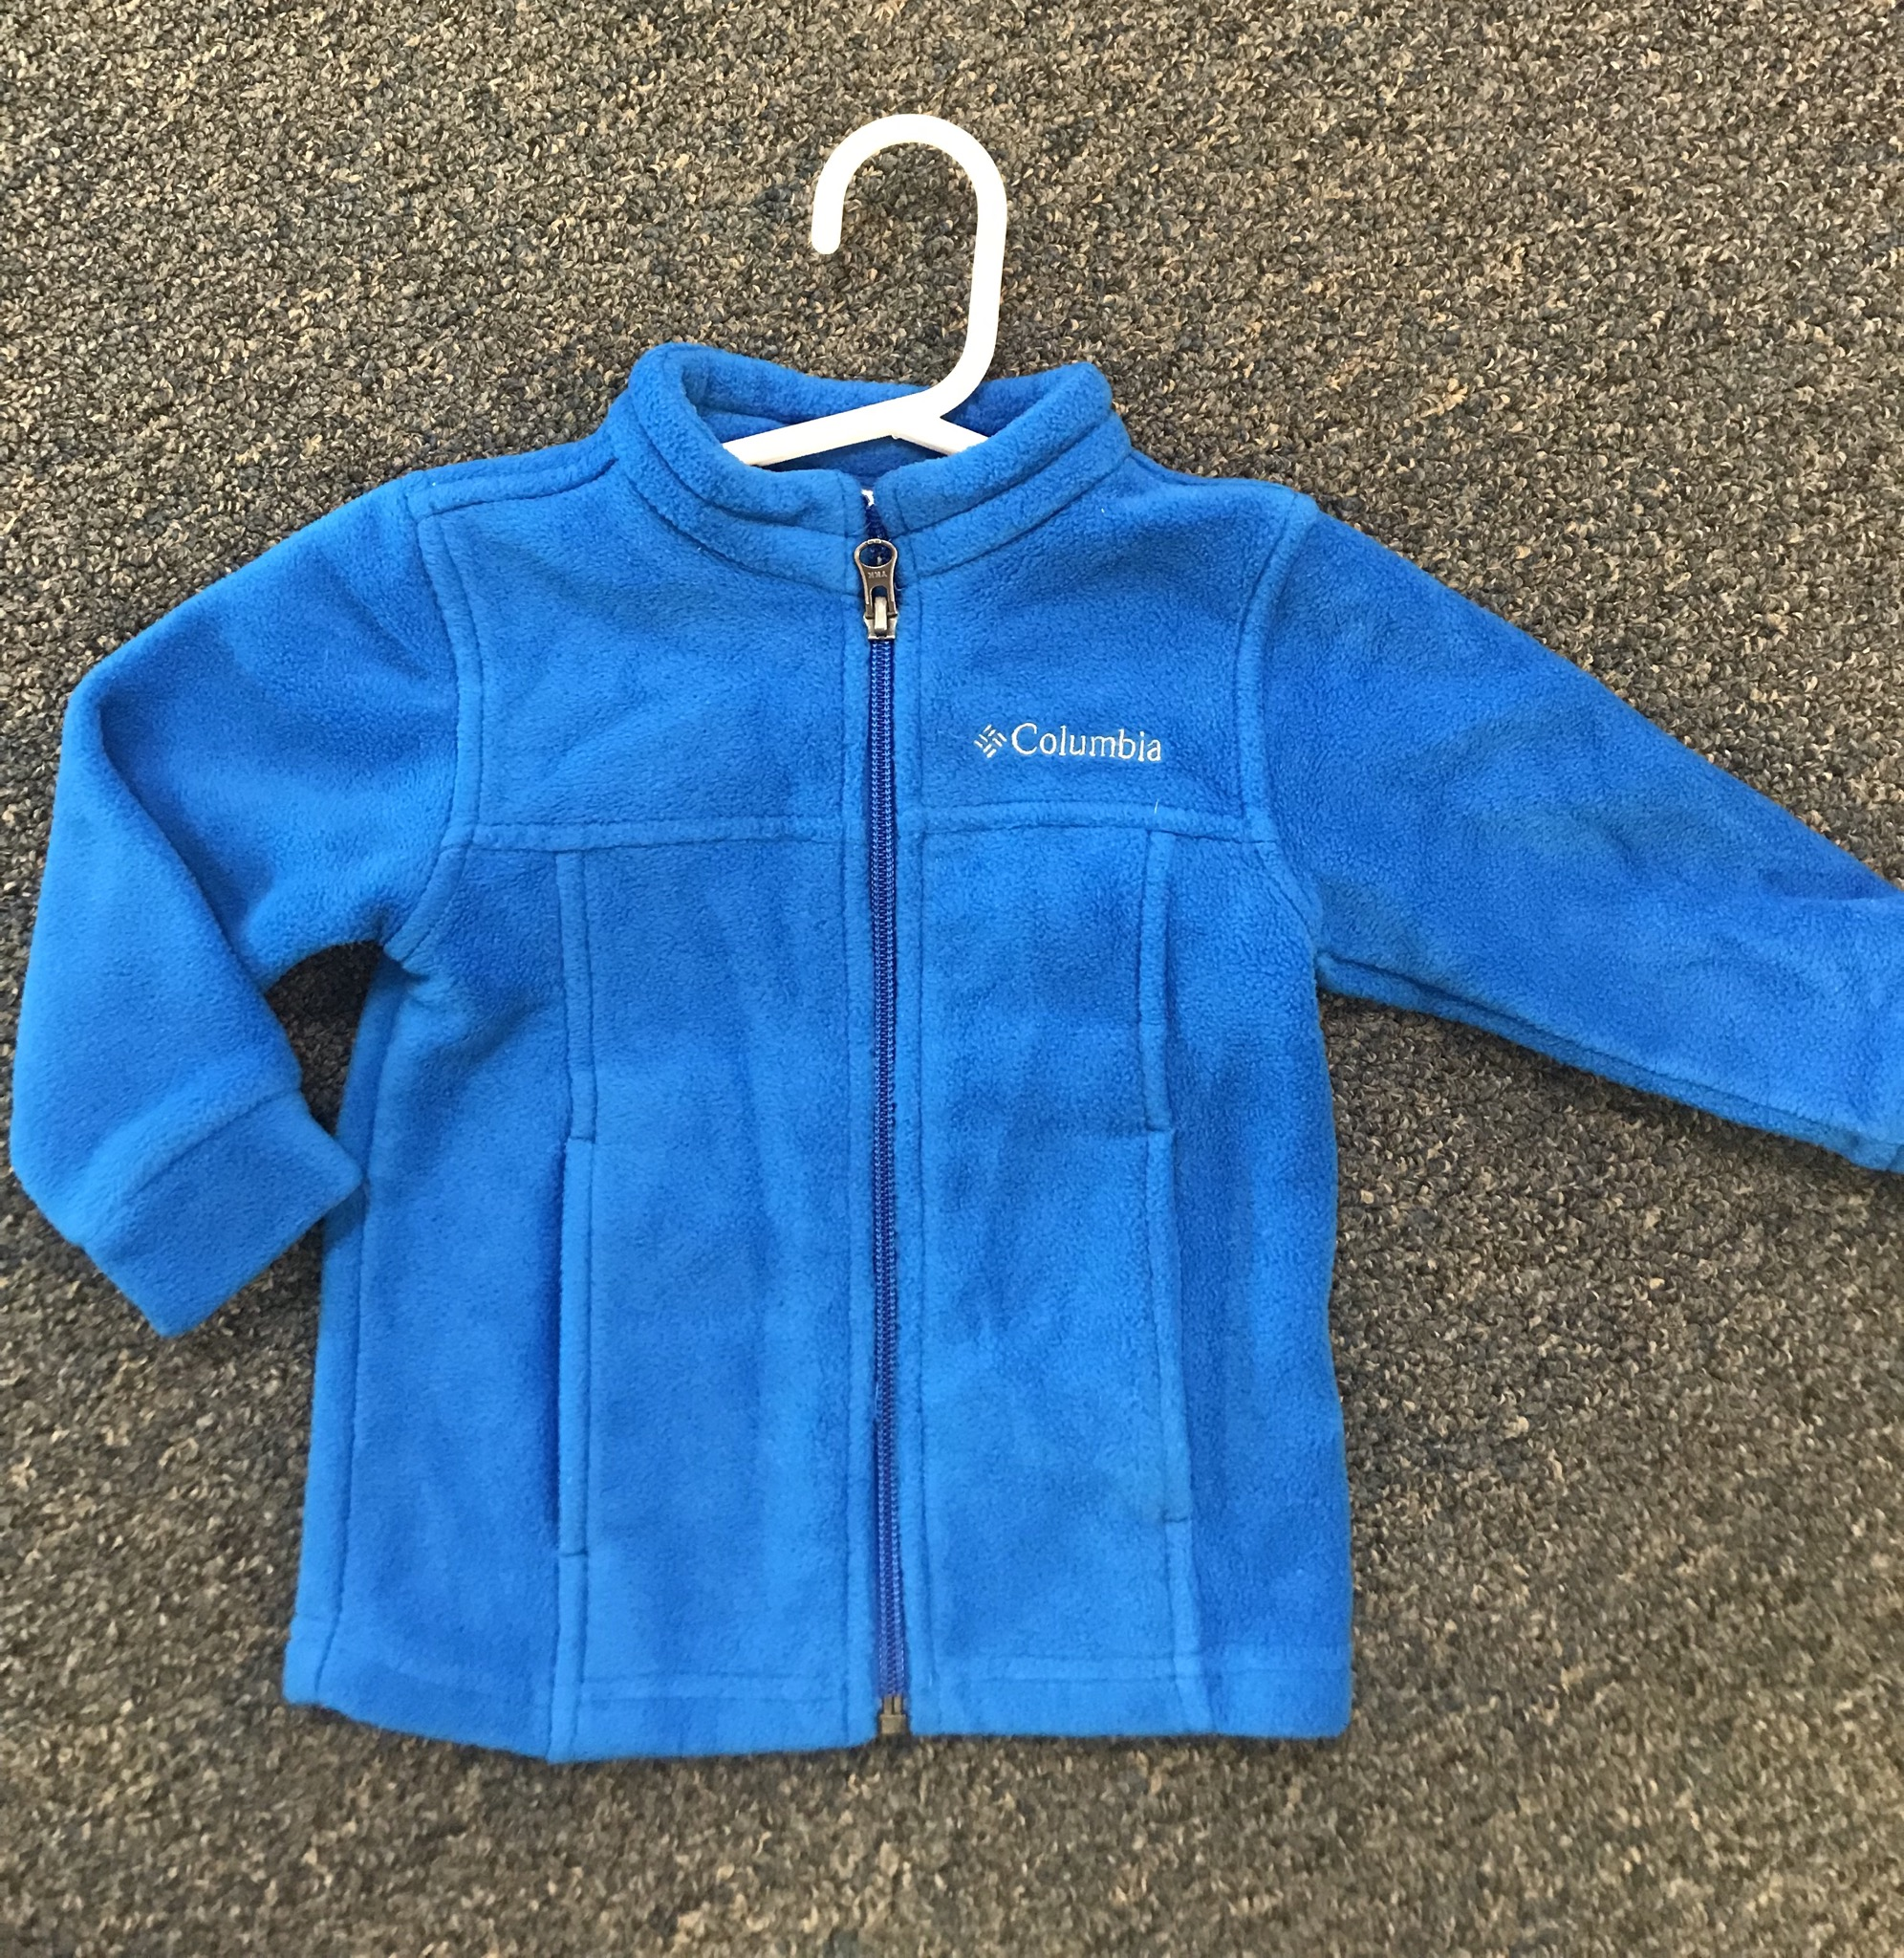 Columbia LS Fleece Jacket w/zipper, excellent condition